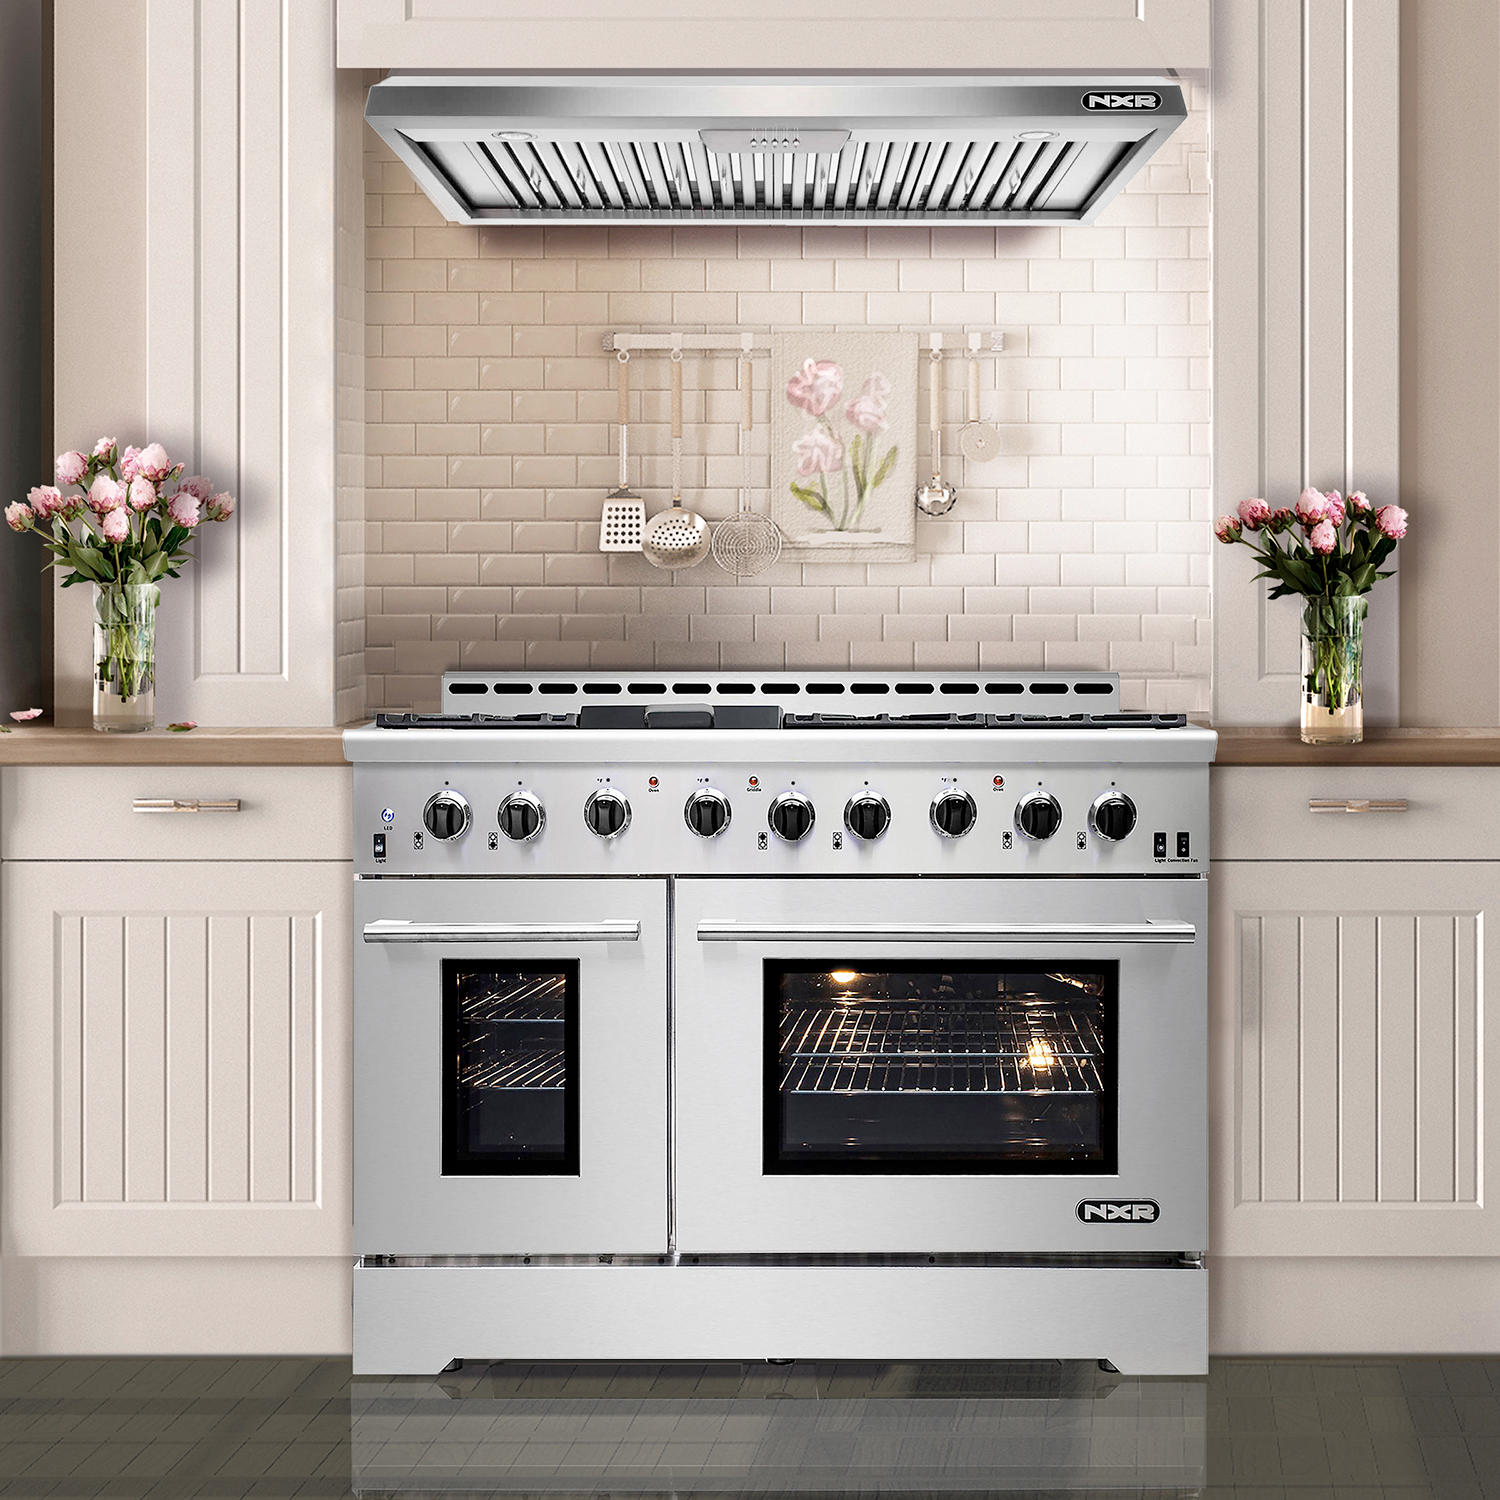 NXR Stainless Steel 48″ 7.2 cu. ft. Professional Style Dual Fuel Range with Under Cabinet Range Hood